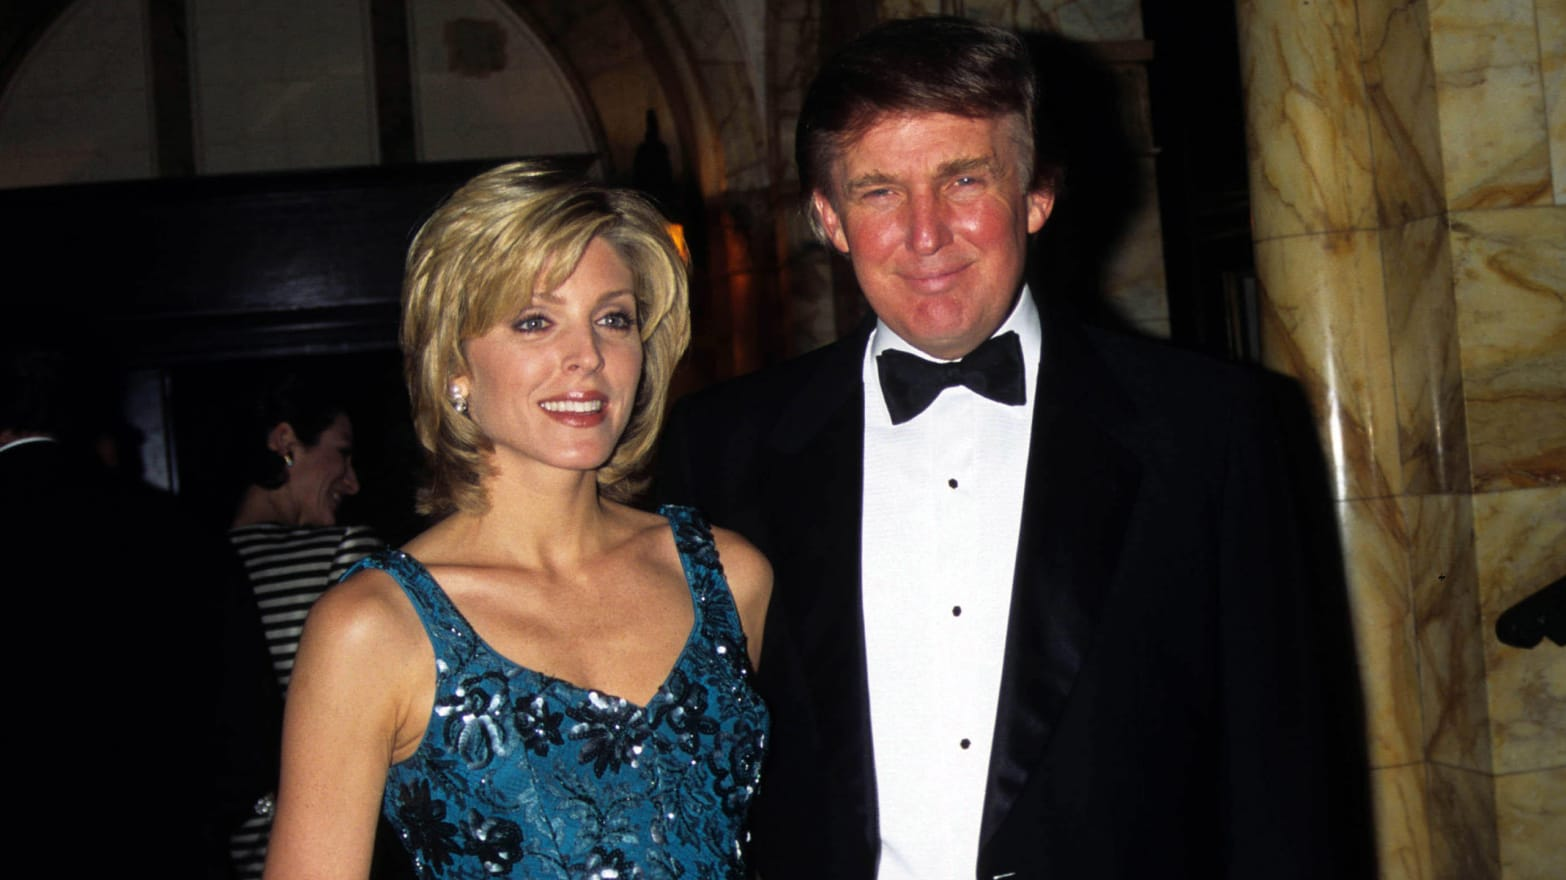 marla-maples-donald-trump.jpg